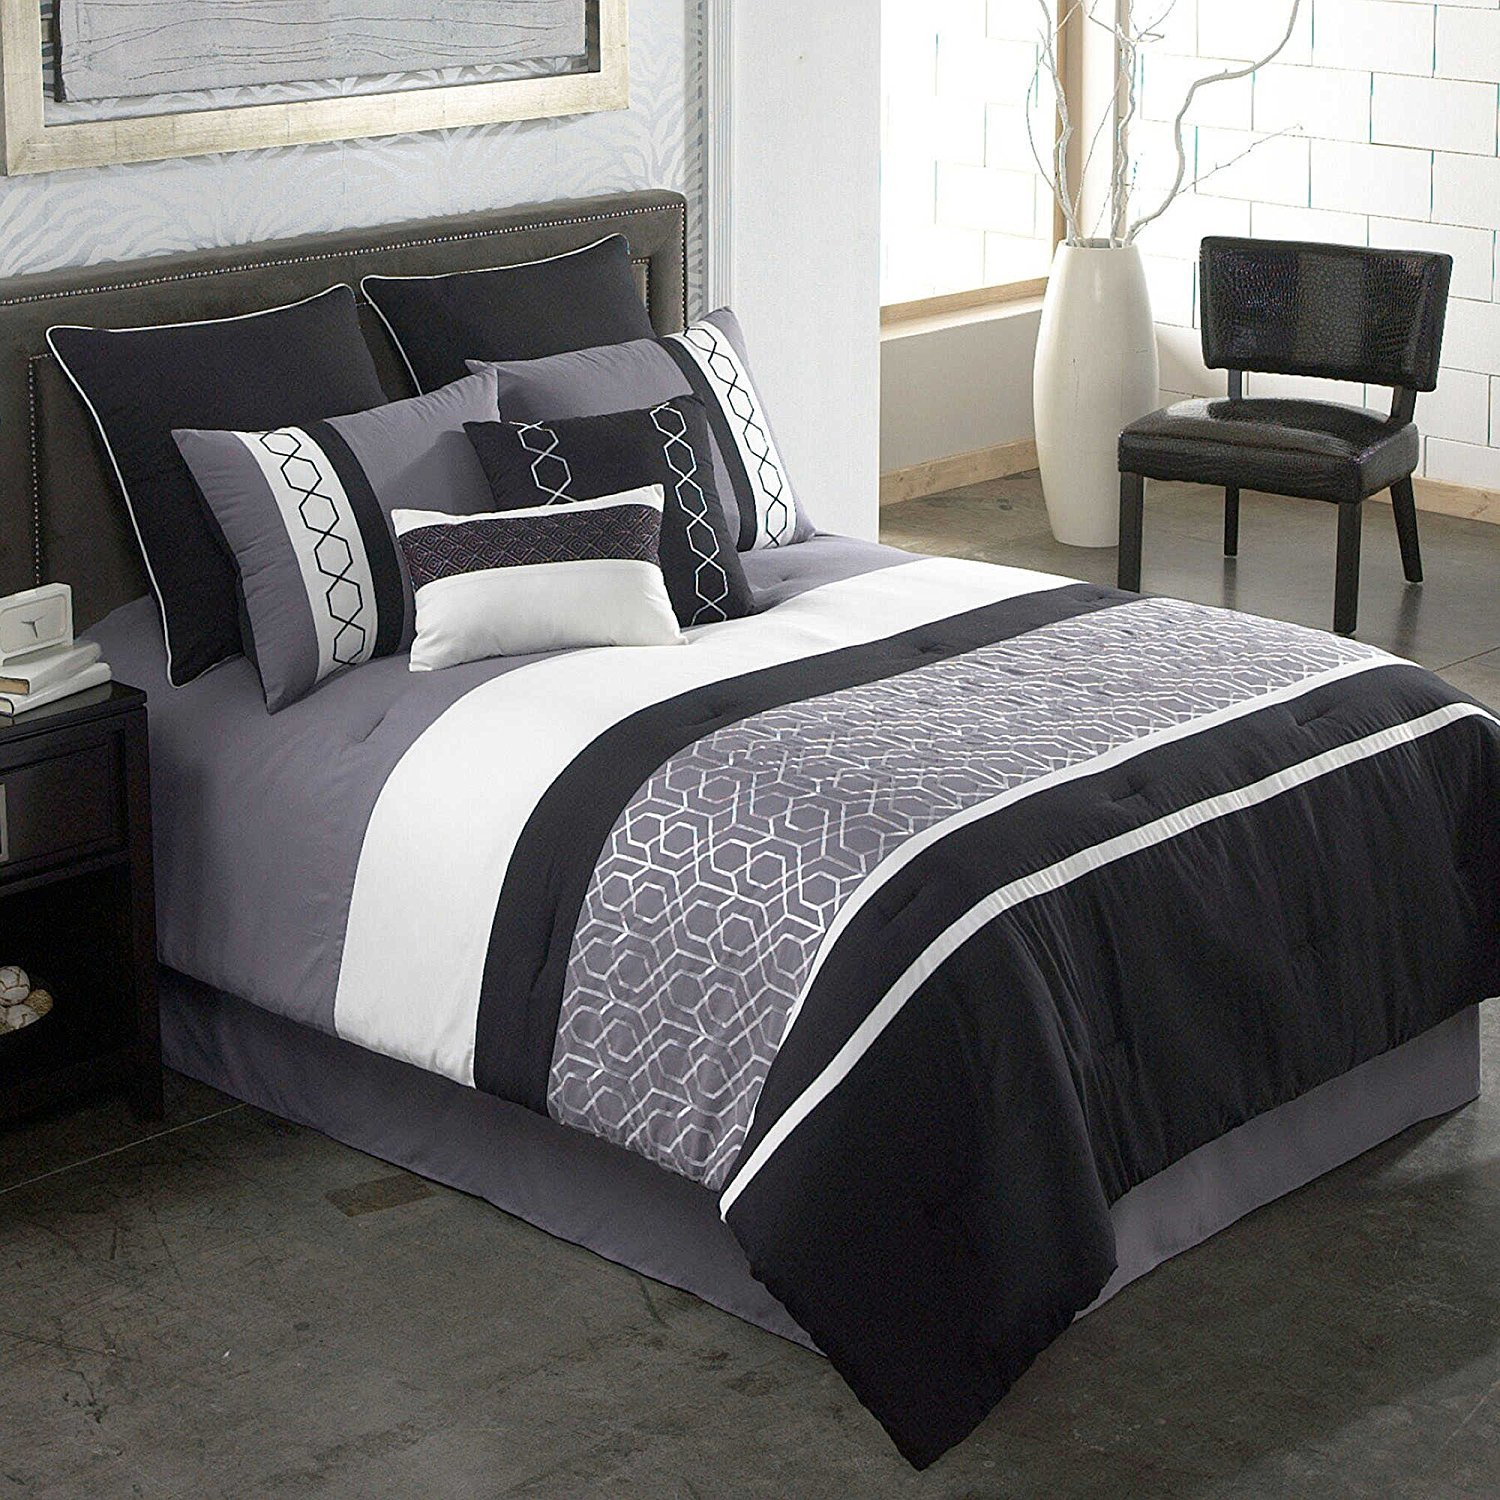 Modern Elegant Luxury Striped Patterned Bedding Hotel Bed Black Grey Comforter Set for Teen Girls, QUEEN (8 Piece Bed in a Bag)